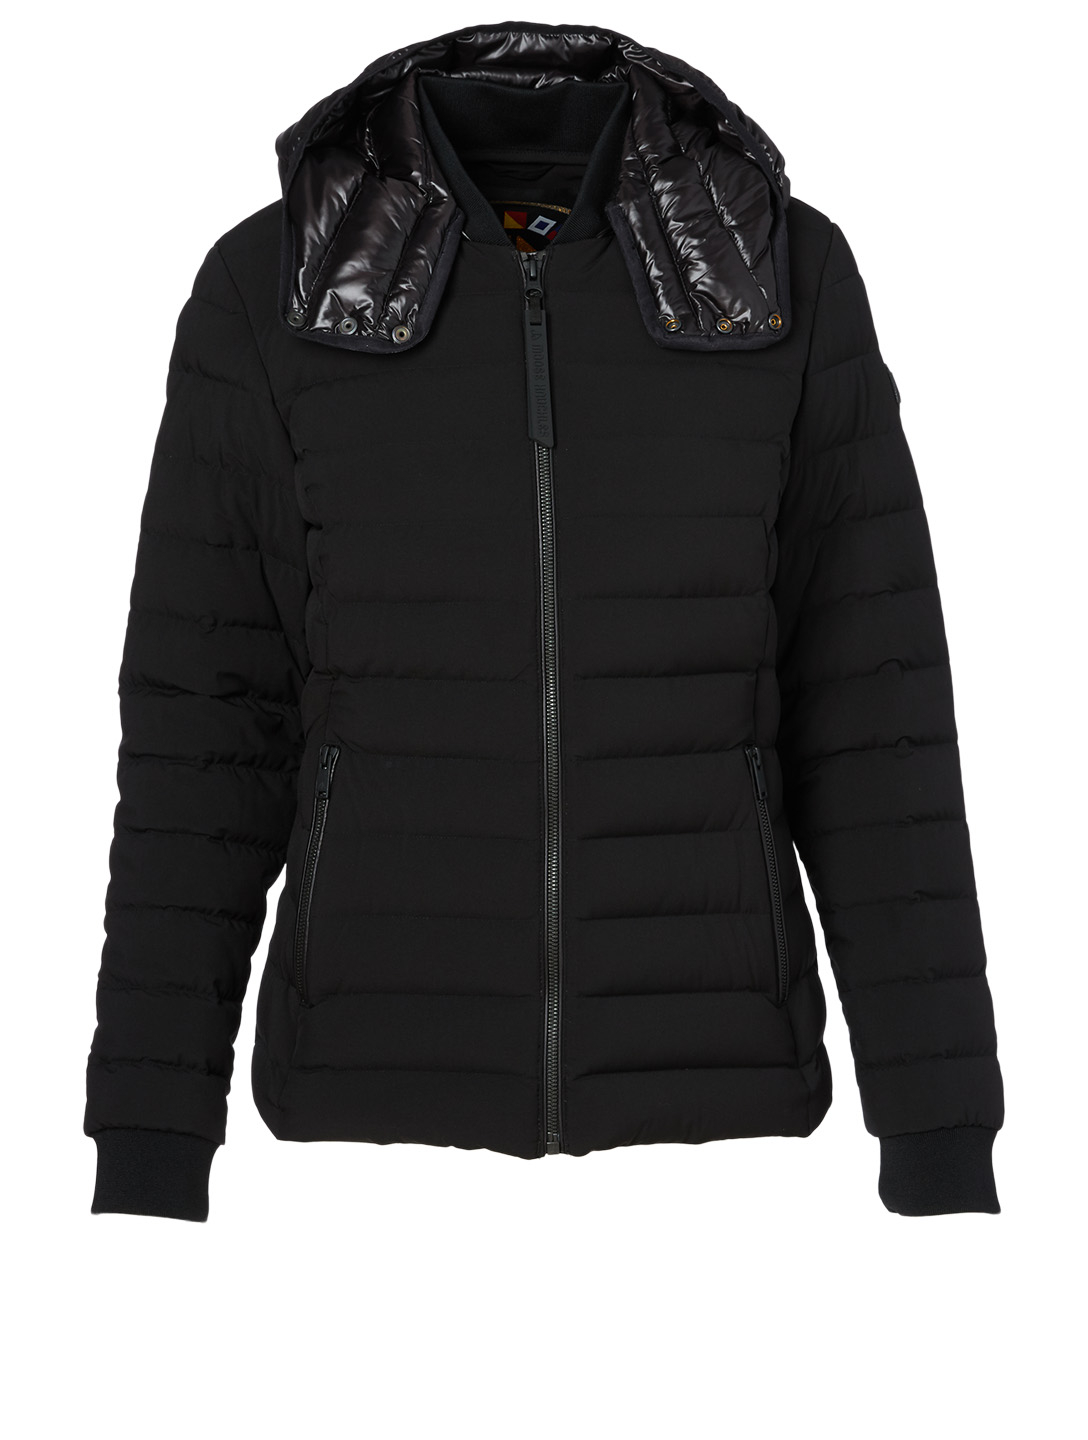 MOOSE KNUCKLES Felicite Down Jacket Women's Black